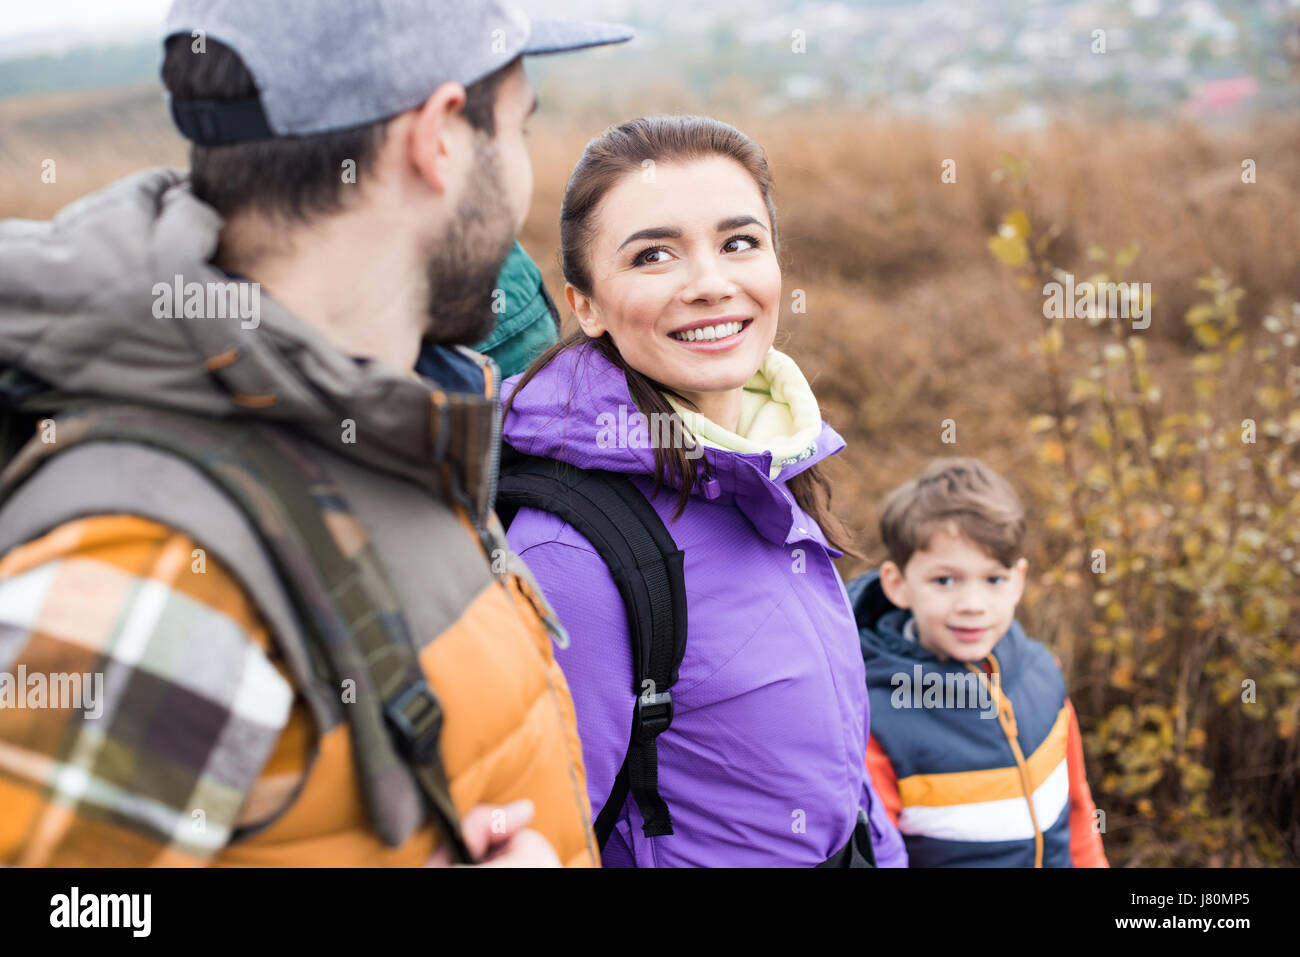 Happy family with backpacks holding hands and looking at each other - Stock Image